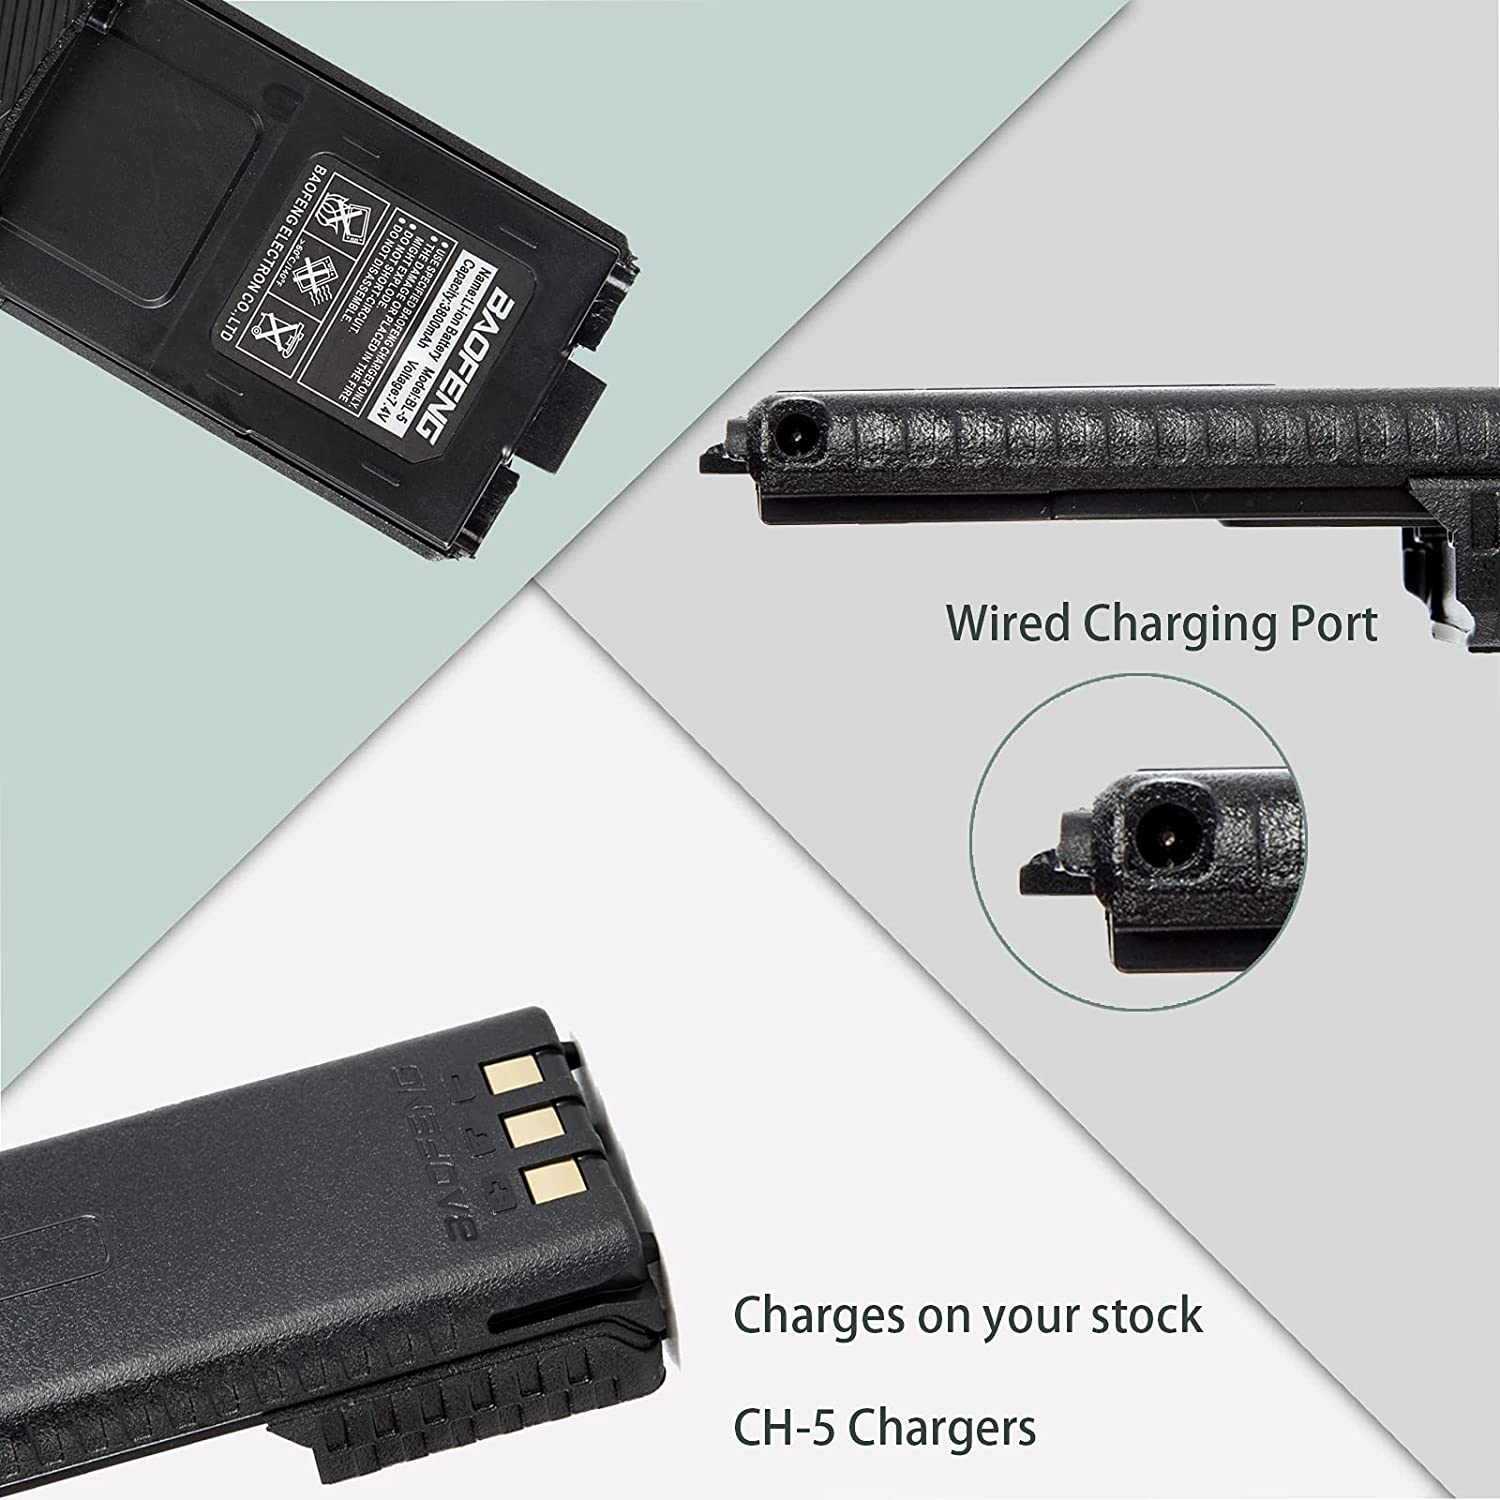 JIZHENG BL-5 Extended Replacement Battery 3800 mAh with USB Charging Cable/Cord Compatible with Baofeng UV-5R, BF-F8HP, UV-5X3 Radio Baofeng Poufeng Accessories Set/BL-5 Battery & USB Charger 1+1Pack : Electronics